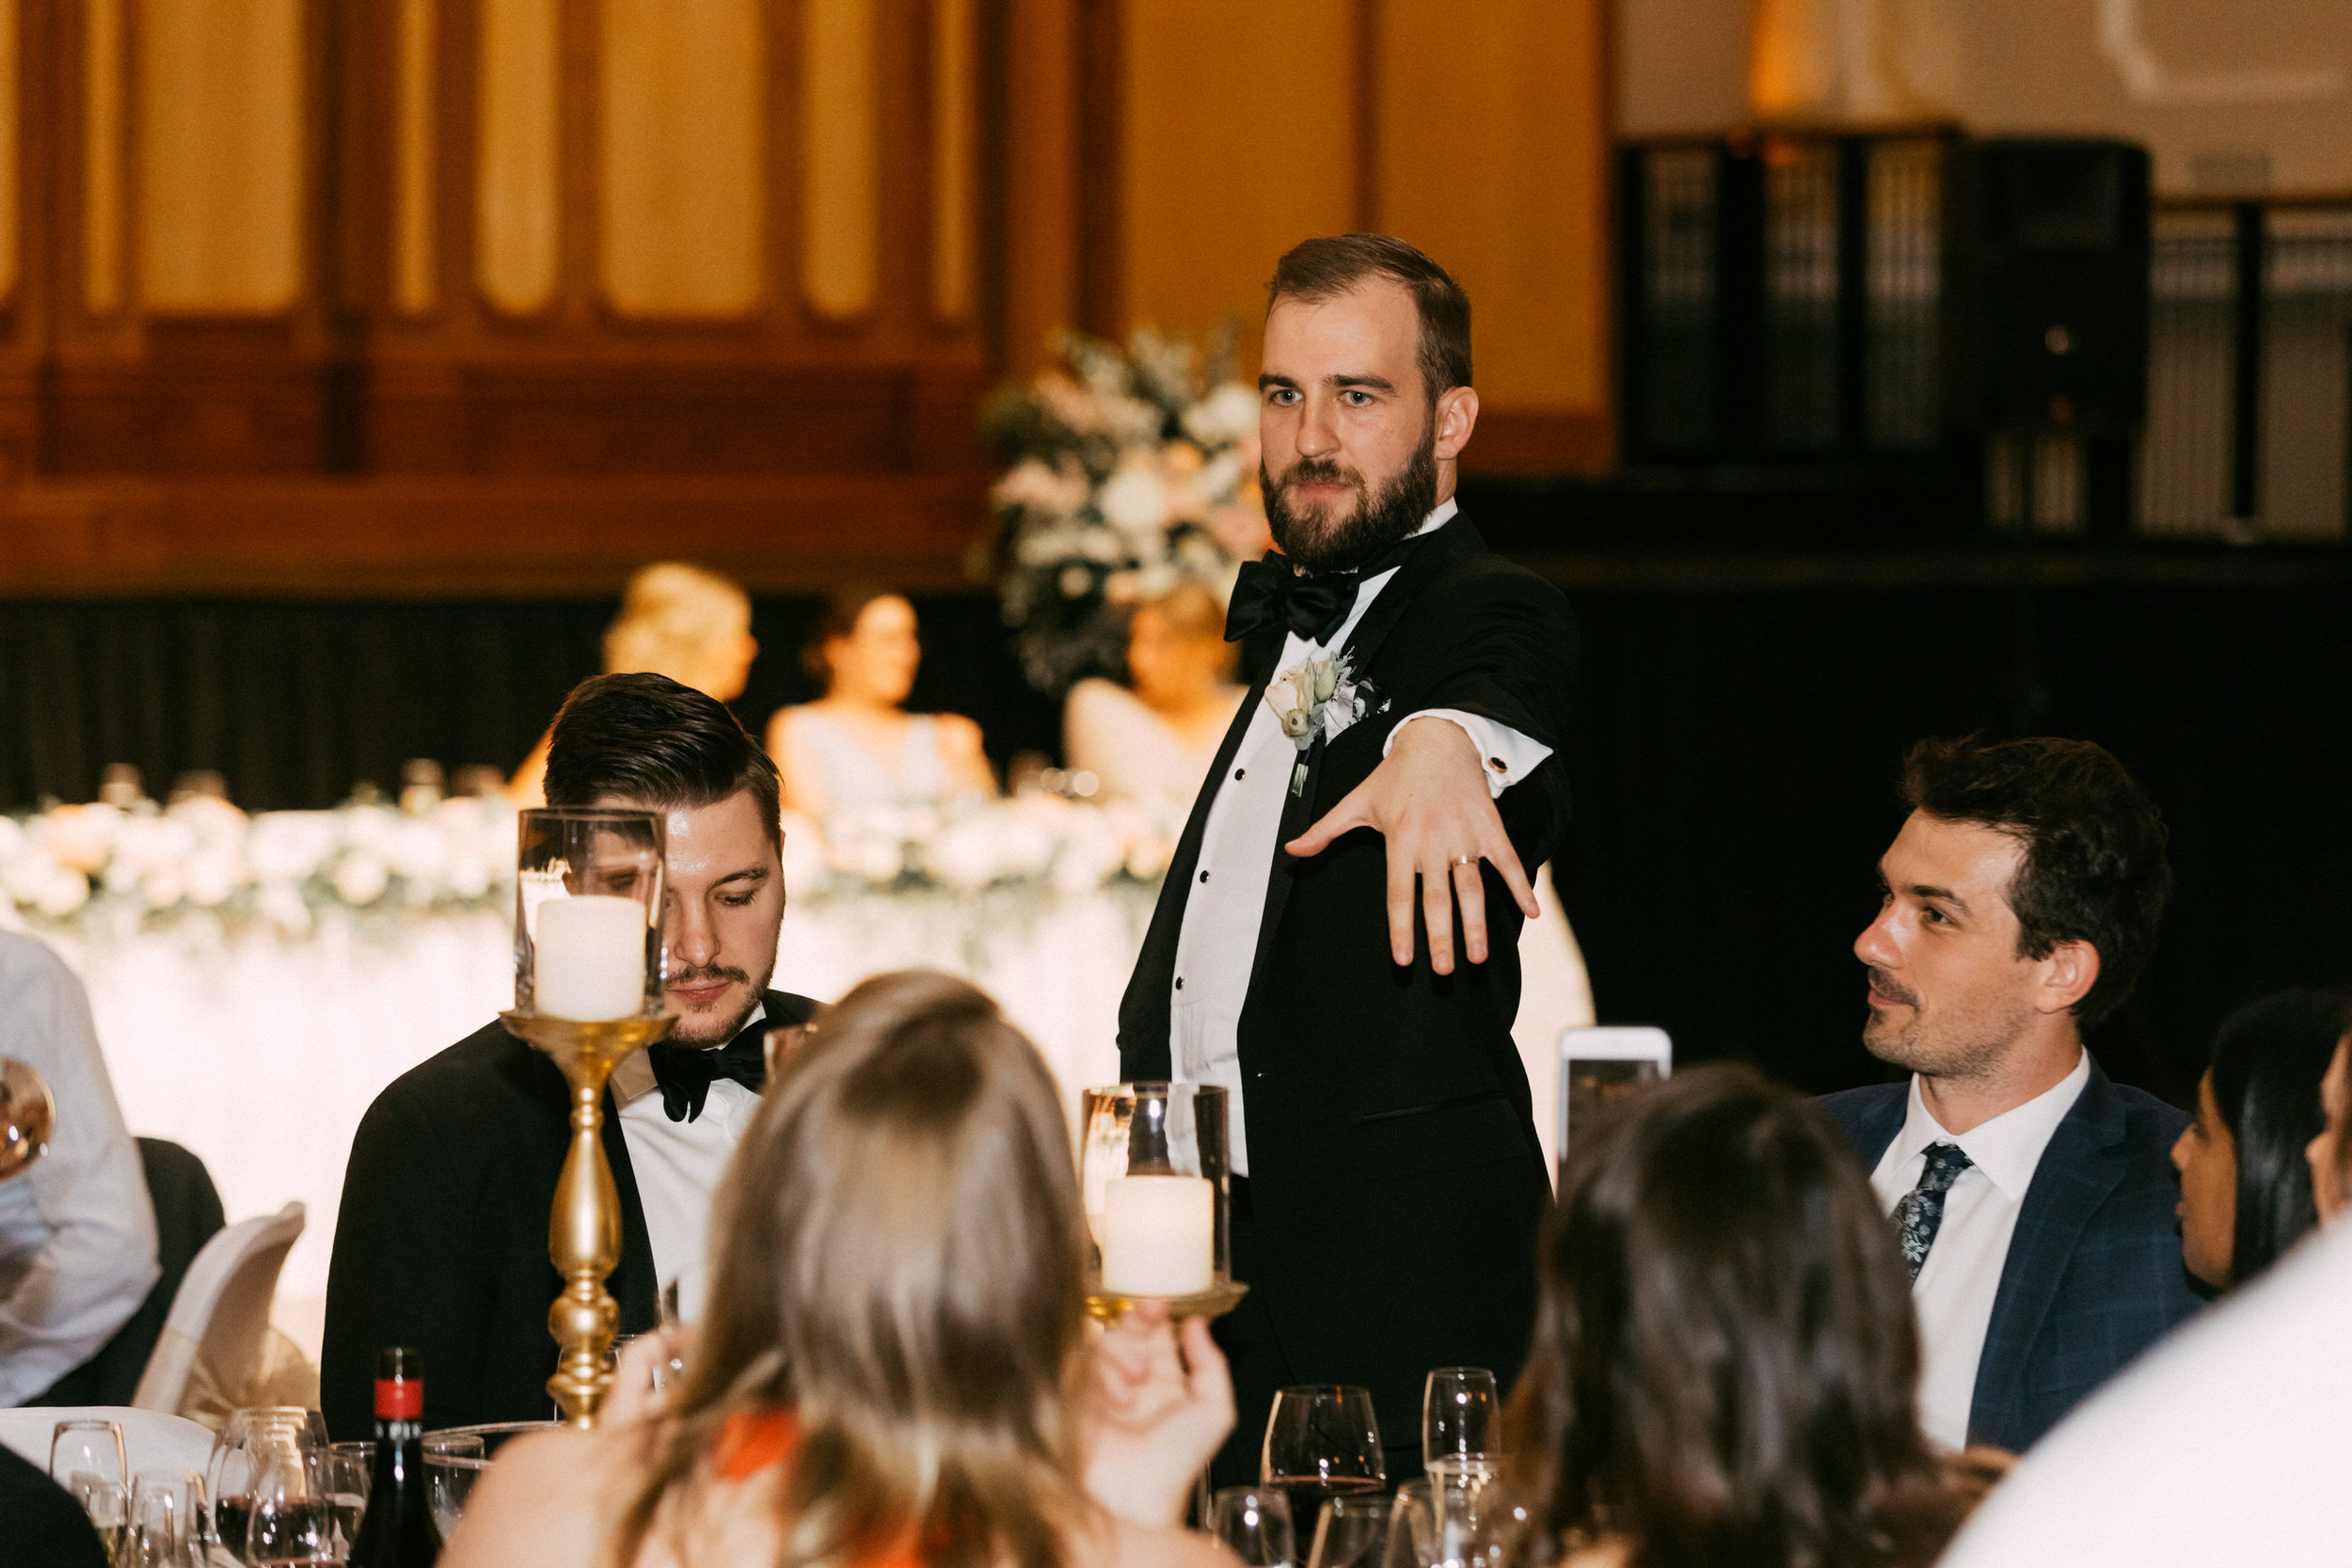 Adelaide Wedding 2019 159.jpg